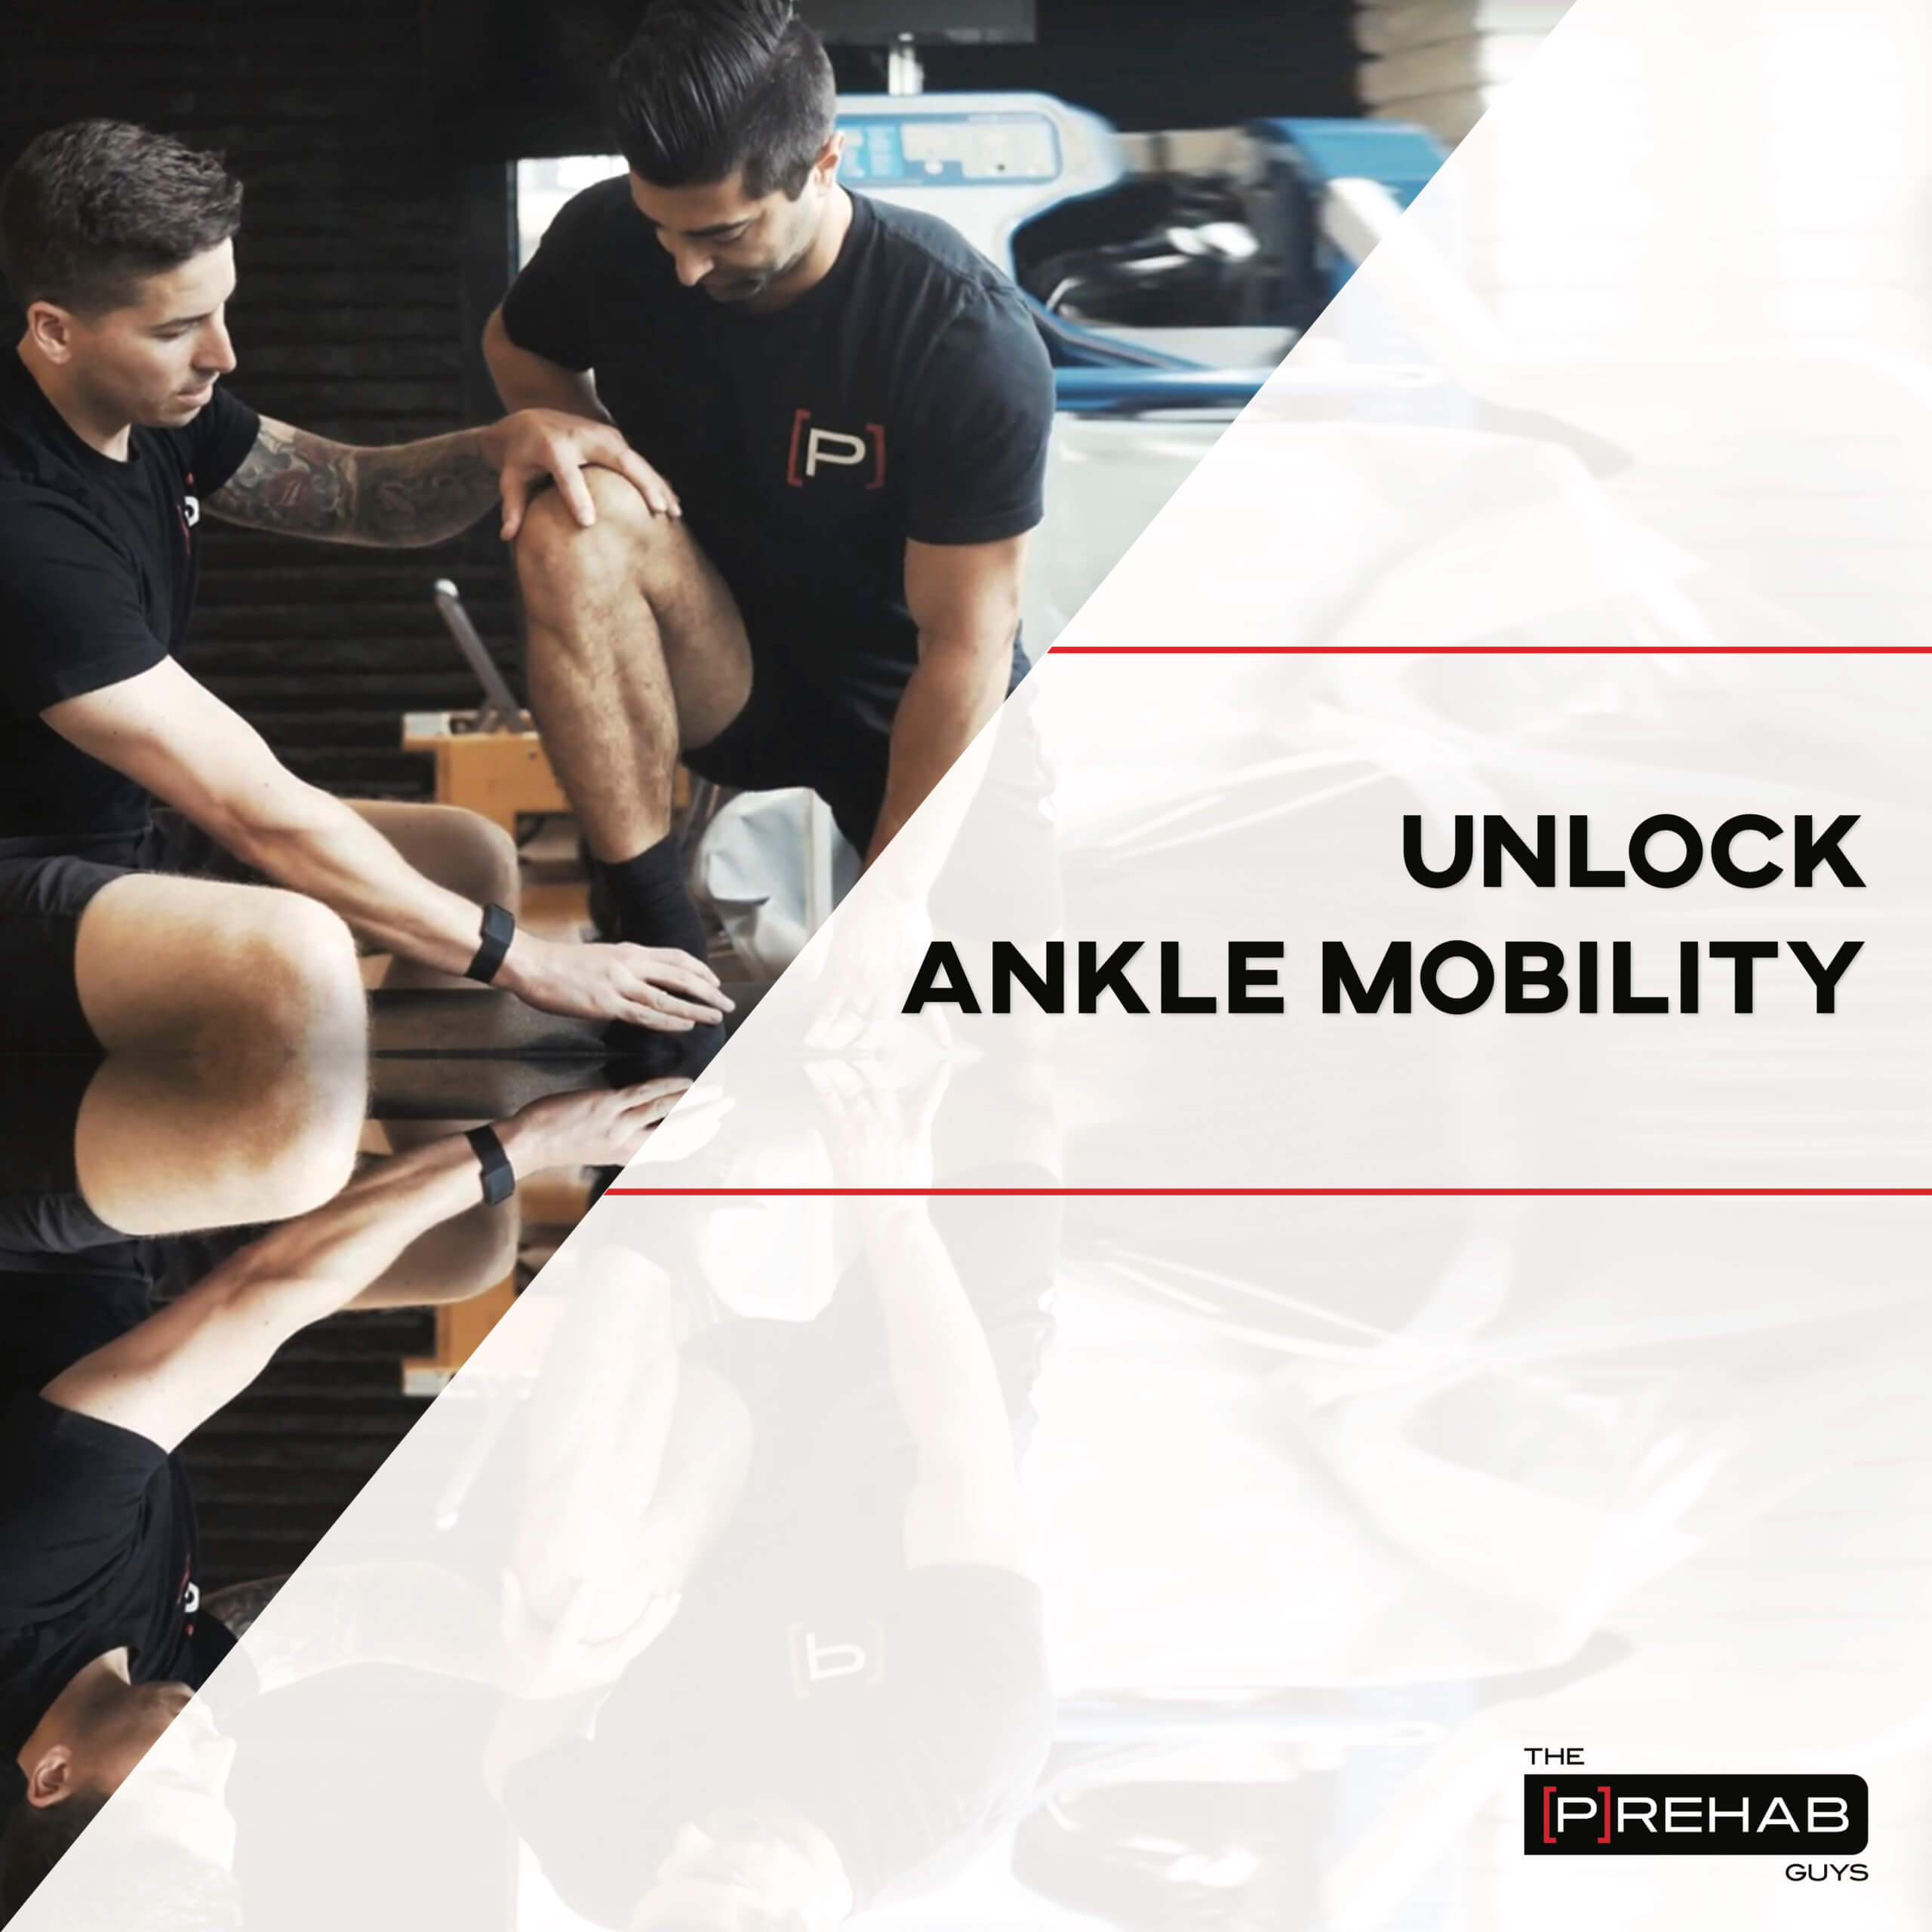 Unlock Ankle Mobility